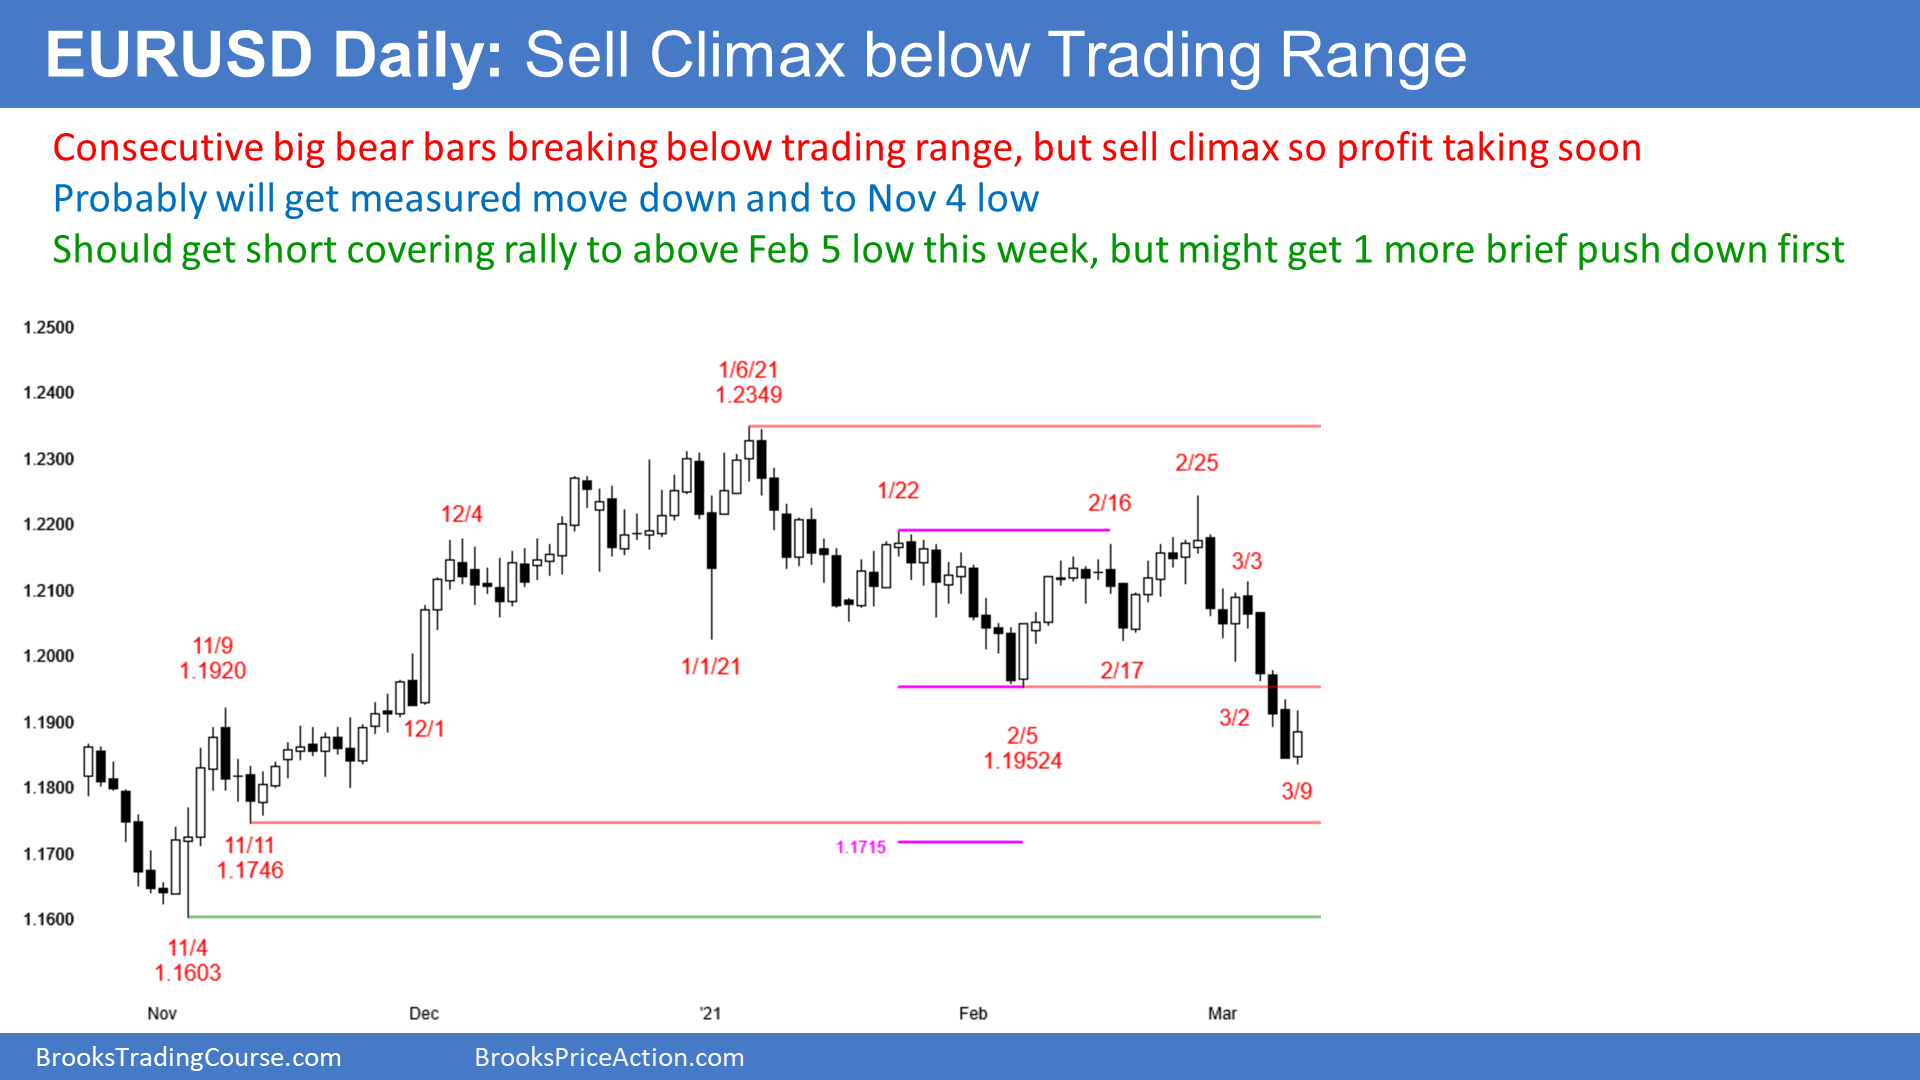 EURUSD Forex sell climax below trading range so short covering soon